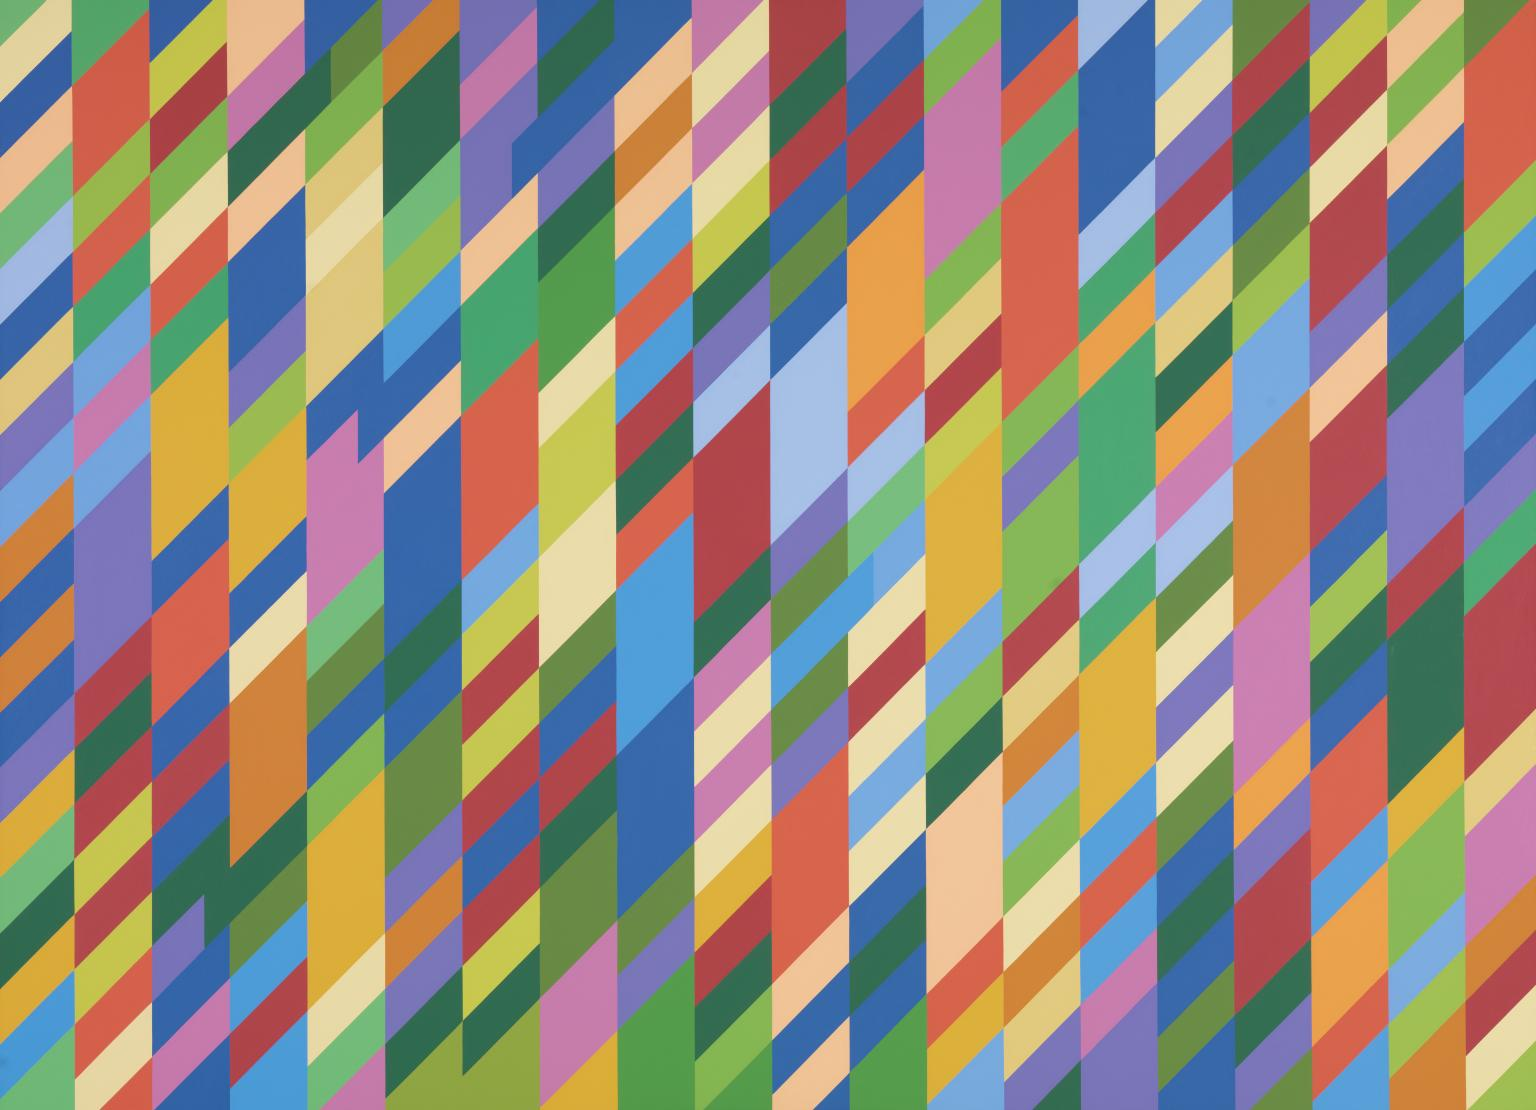 Bridget Riley: Nataraja (1993) © Bridget Riley | Image from Tate Gallery (fair use)